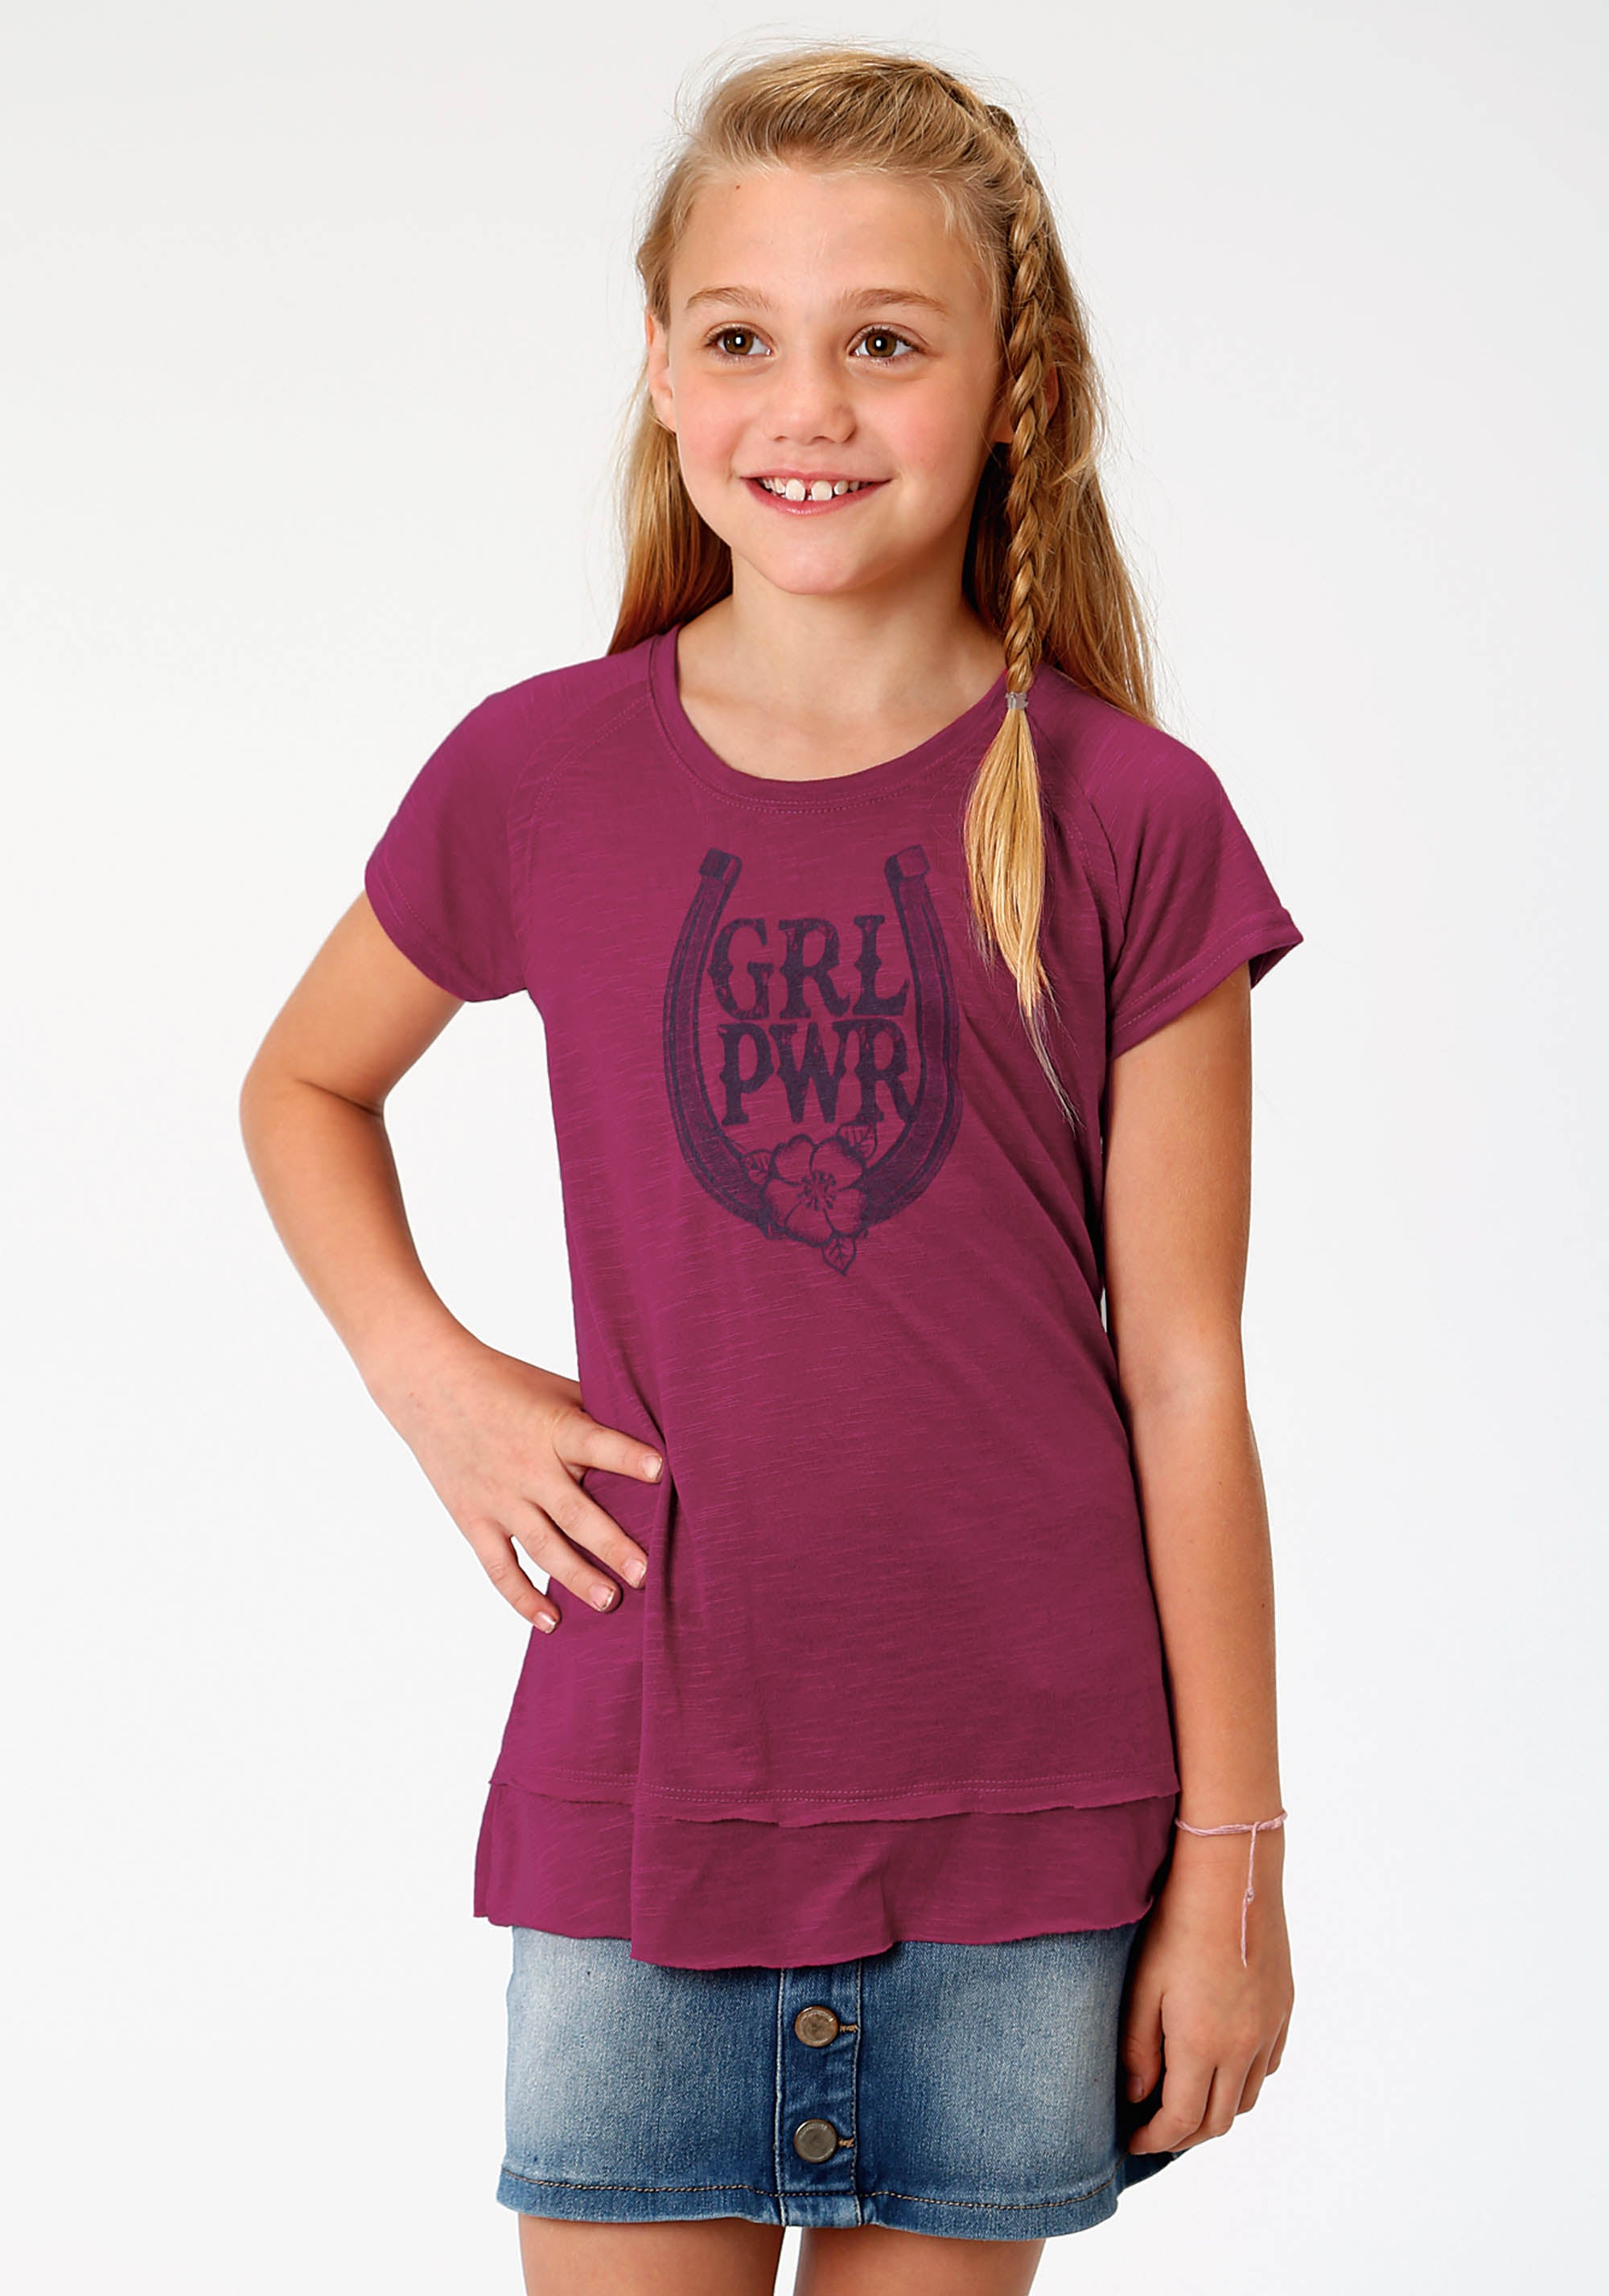 ROPER GIRLS PURPLE 8173 POLY RAYON JERSEY TEE FIVE STAR GIRLS SHORT SLEEVE